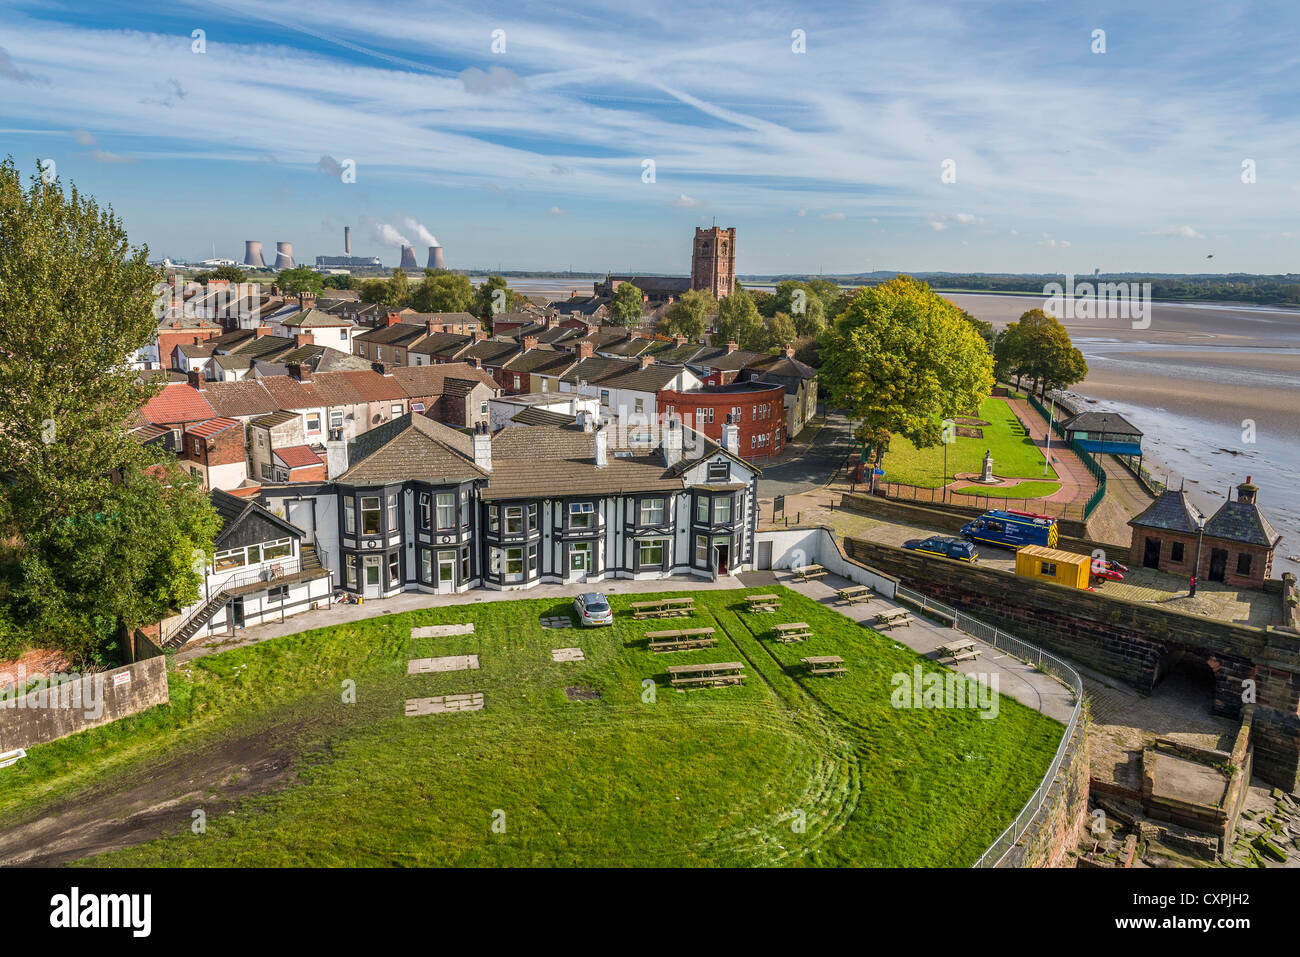 West Bank area of Widnes in Cheshire beside the river Mersey. - Stock Image